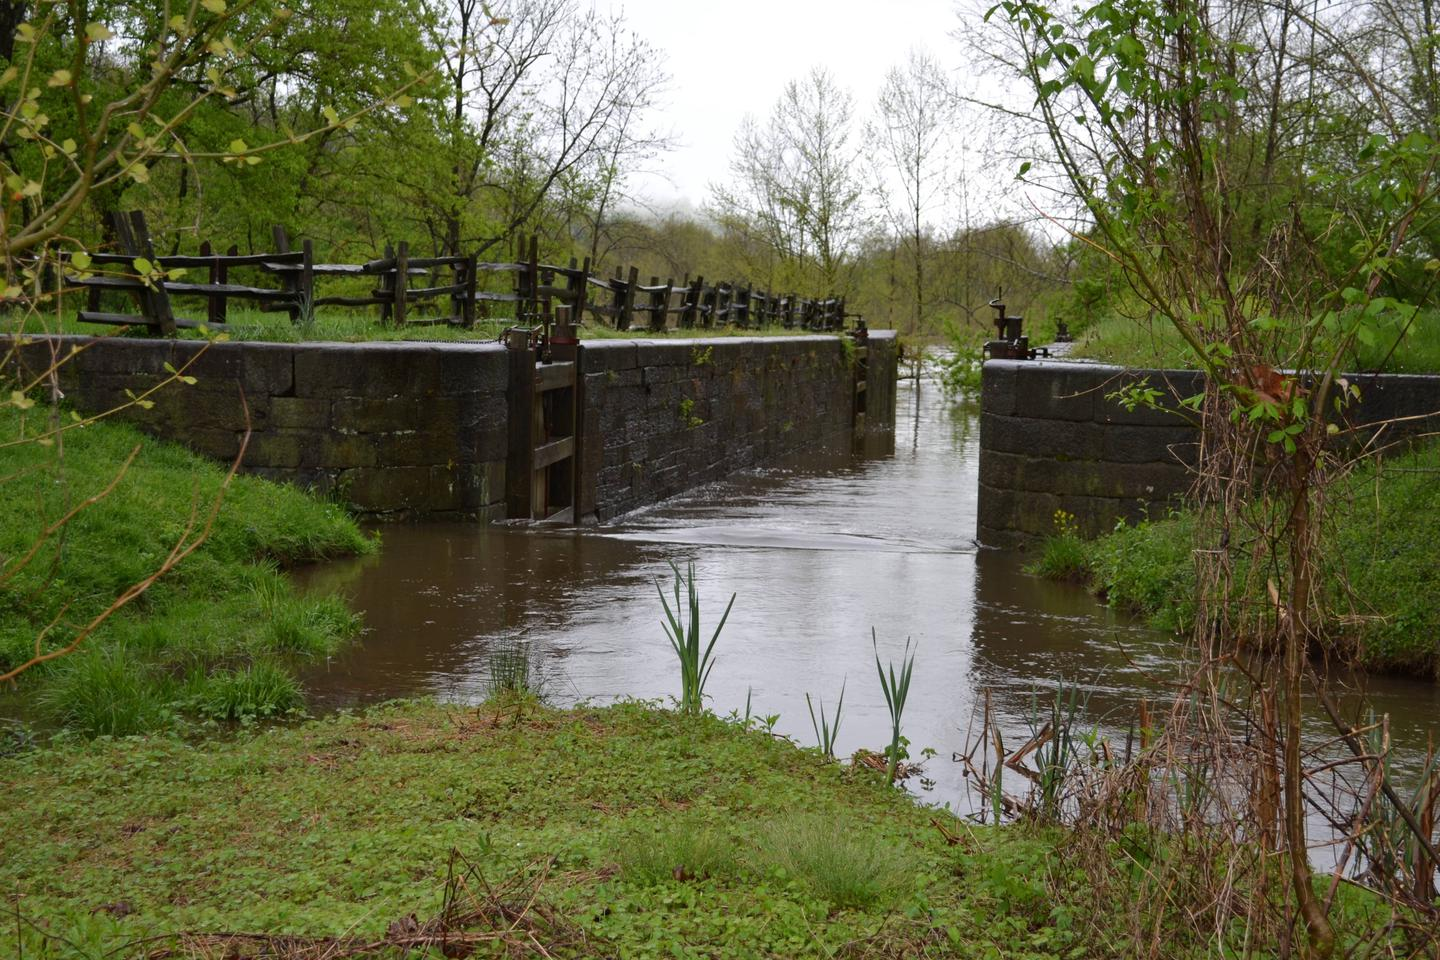 Battery Creek Lock.The Battery Creek Lock constructed in the 1800s as part of the James River and Kanawha Canal.